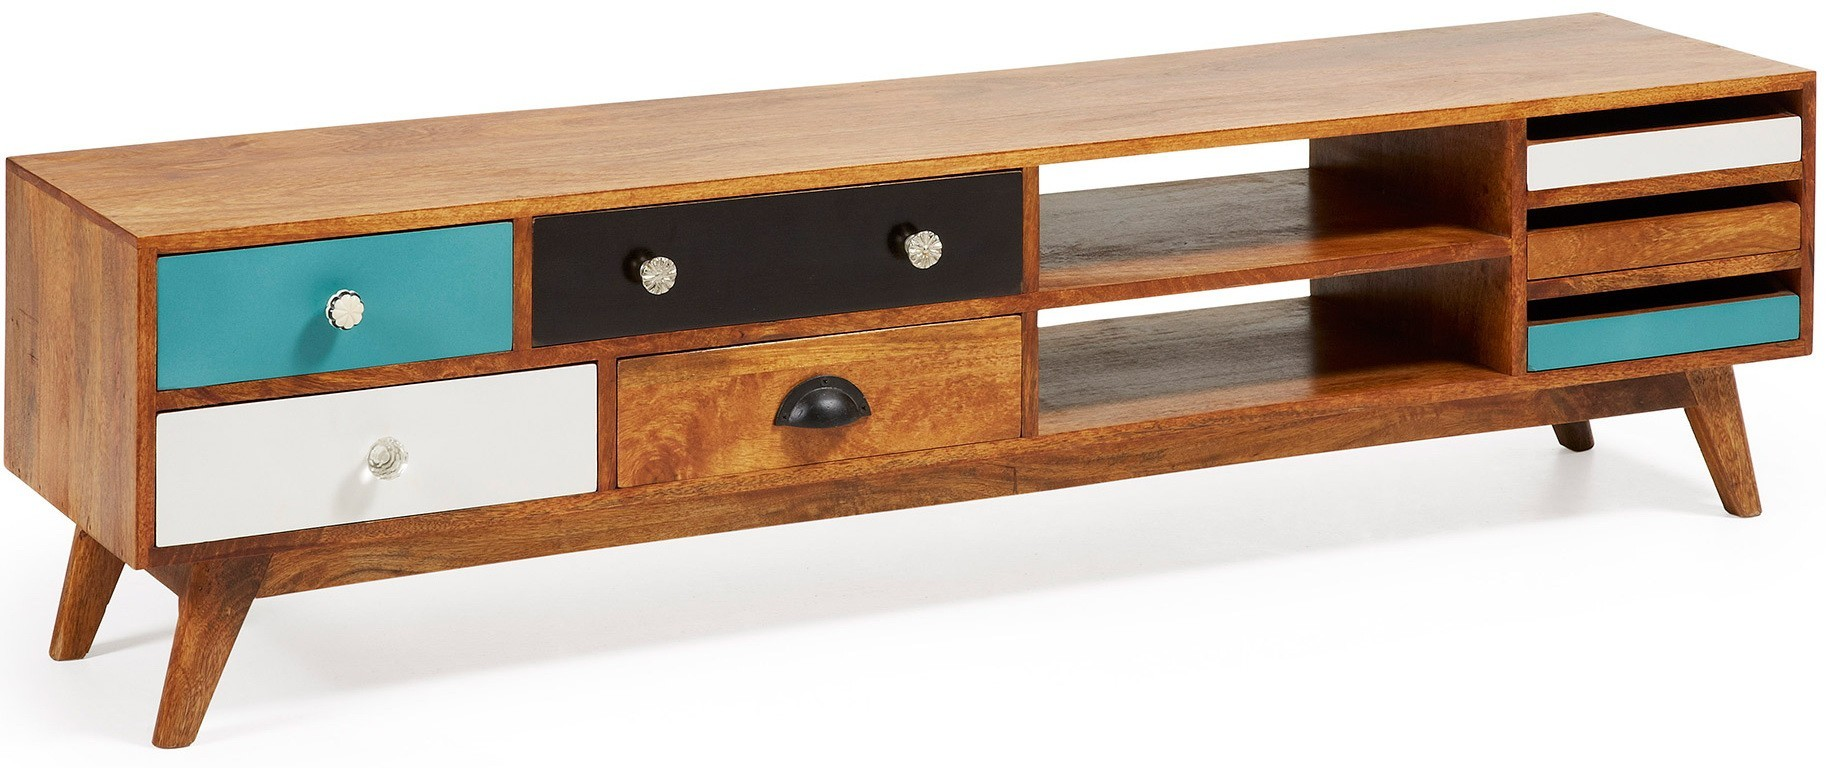 ARON 160x35 expansion wedge Wood TV stand with feet - Livitalia Design